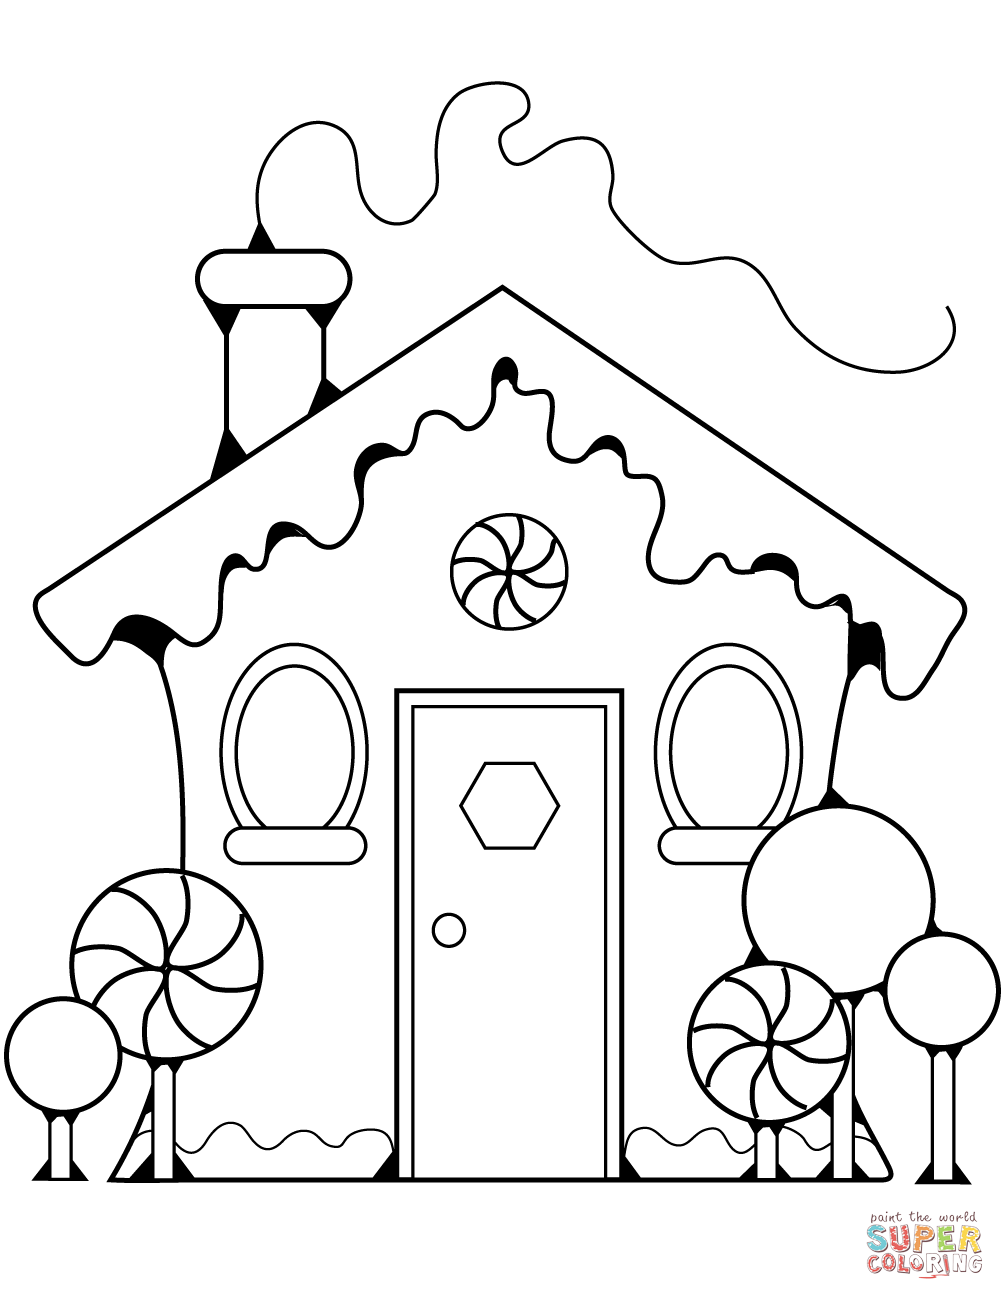 Gingerbread House Super Coloring We Proudly Inform You That We Launch Printable Christmas Coloring Pages Christmas Coloring Pages Gingerbread House Template